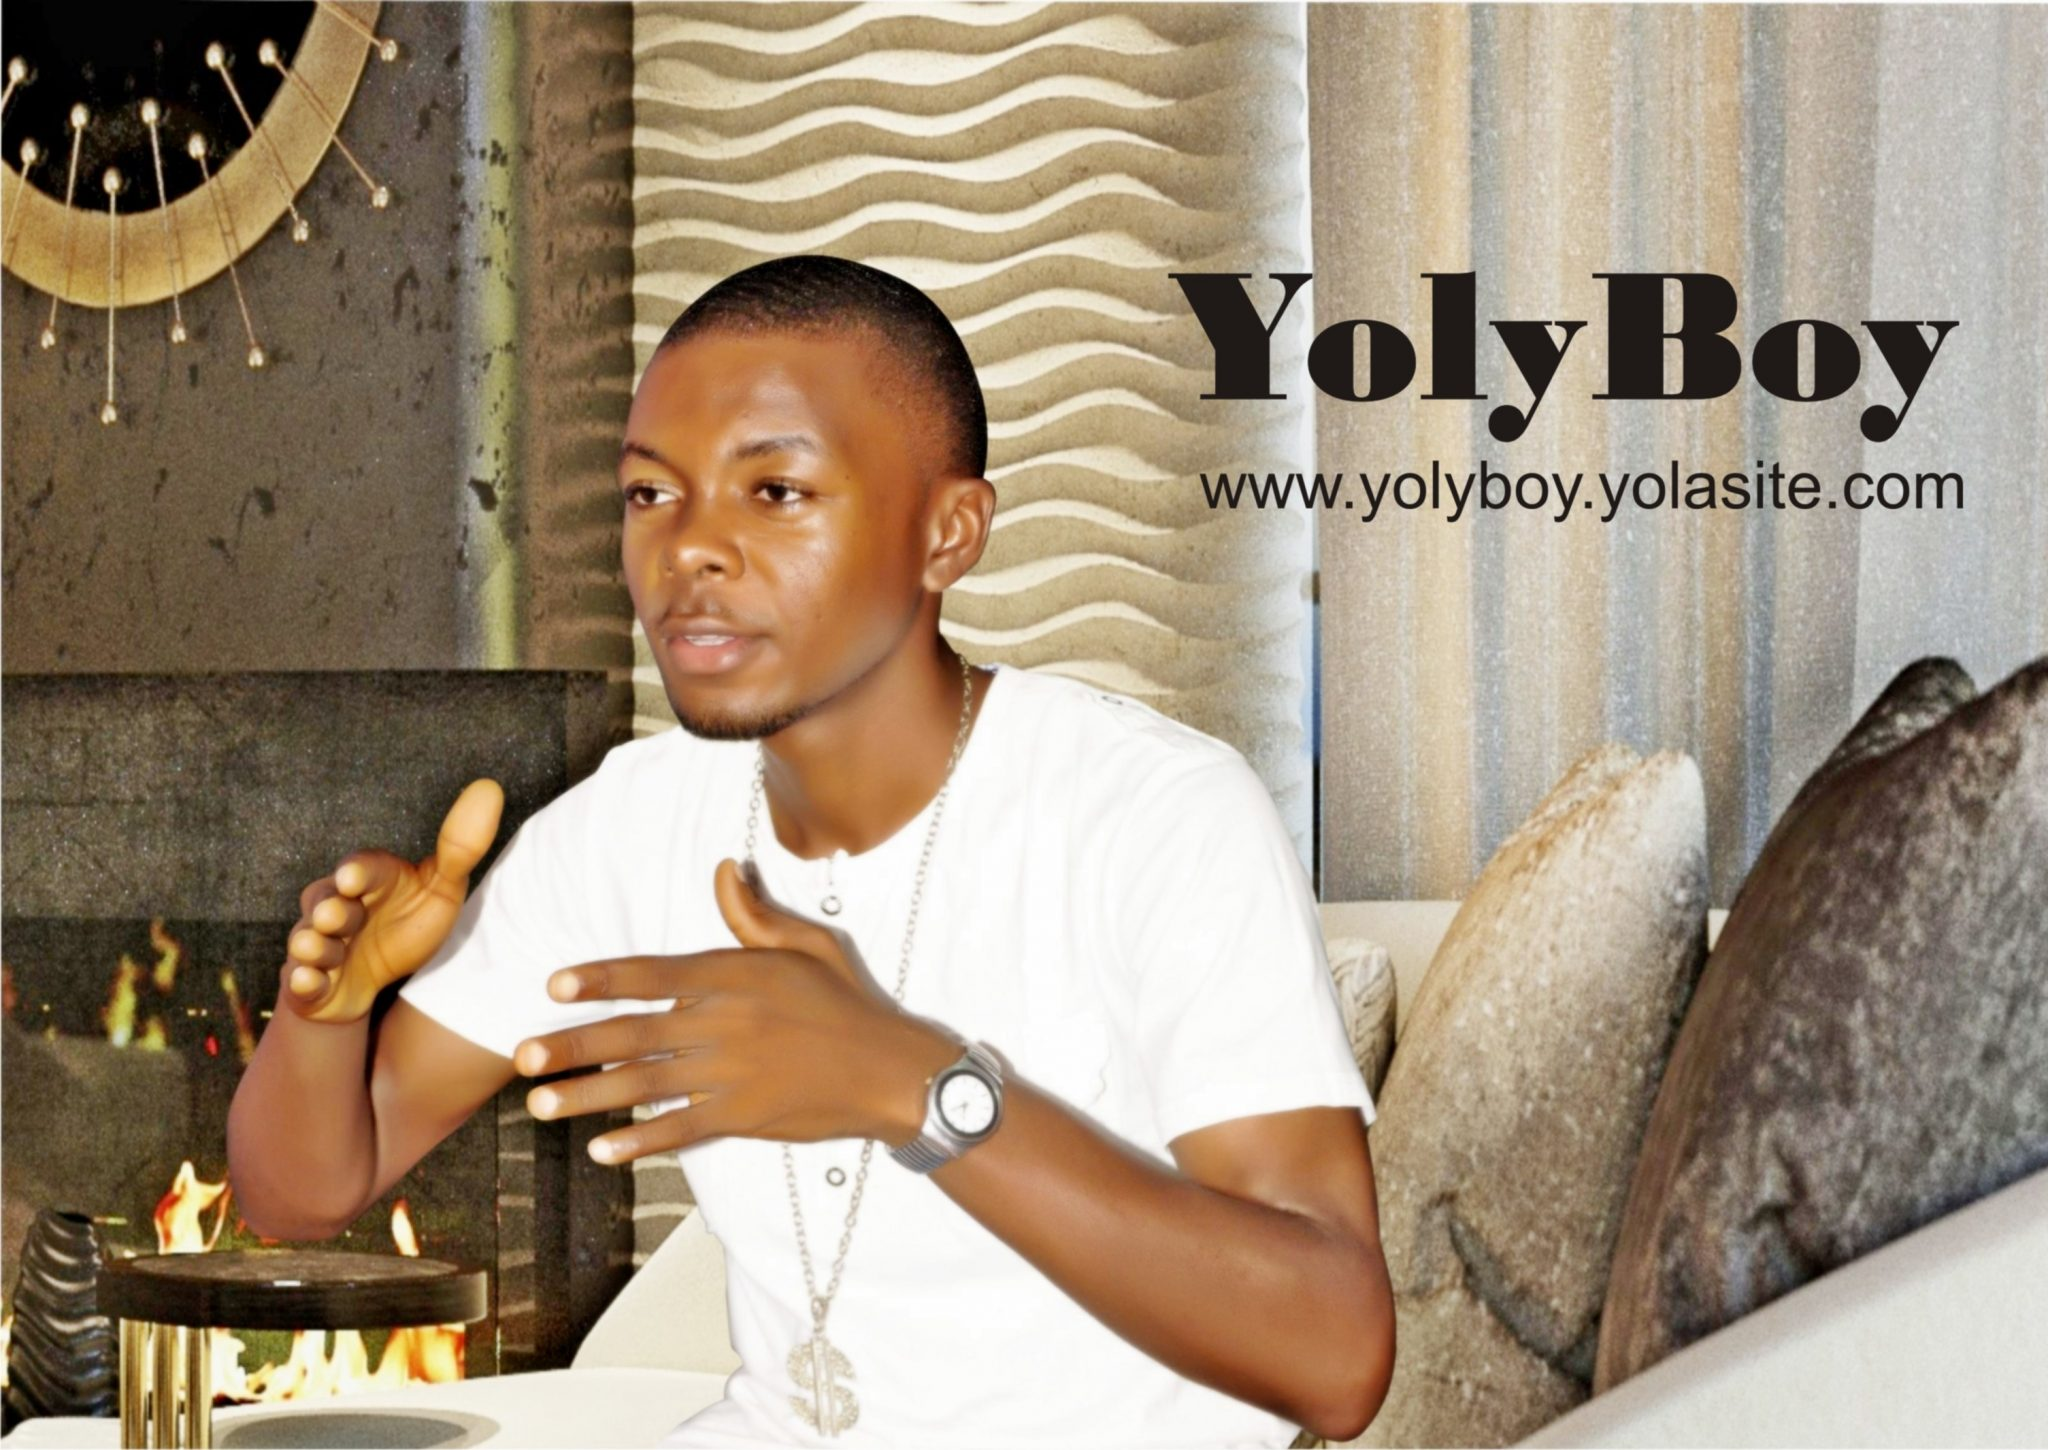 """Nigerian Singer """"YolyBoy"""" Lauds 2face Over His Recent Outburst To Nigerian Youths Ahead of 2019 Elections"""